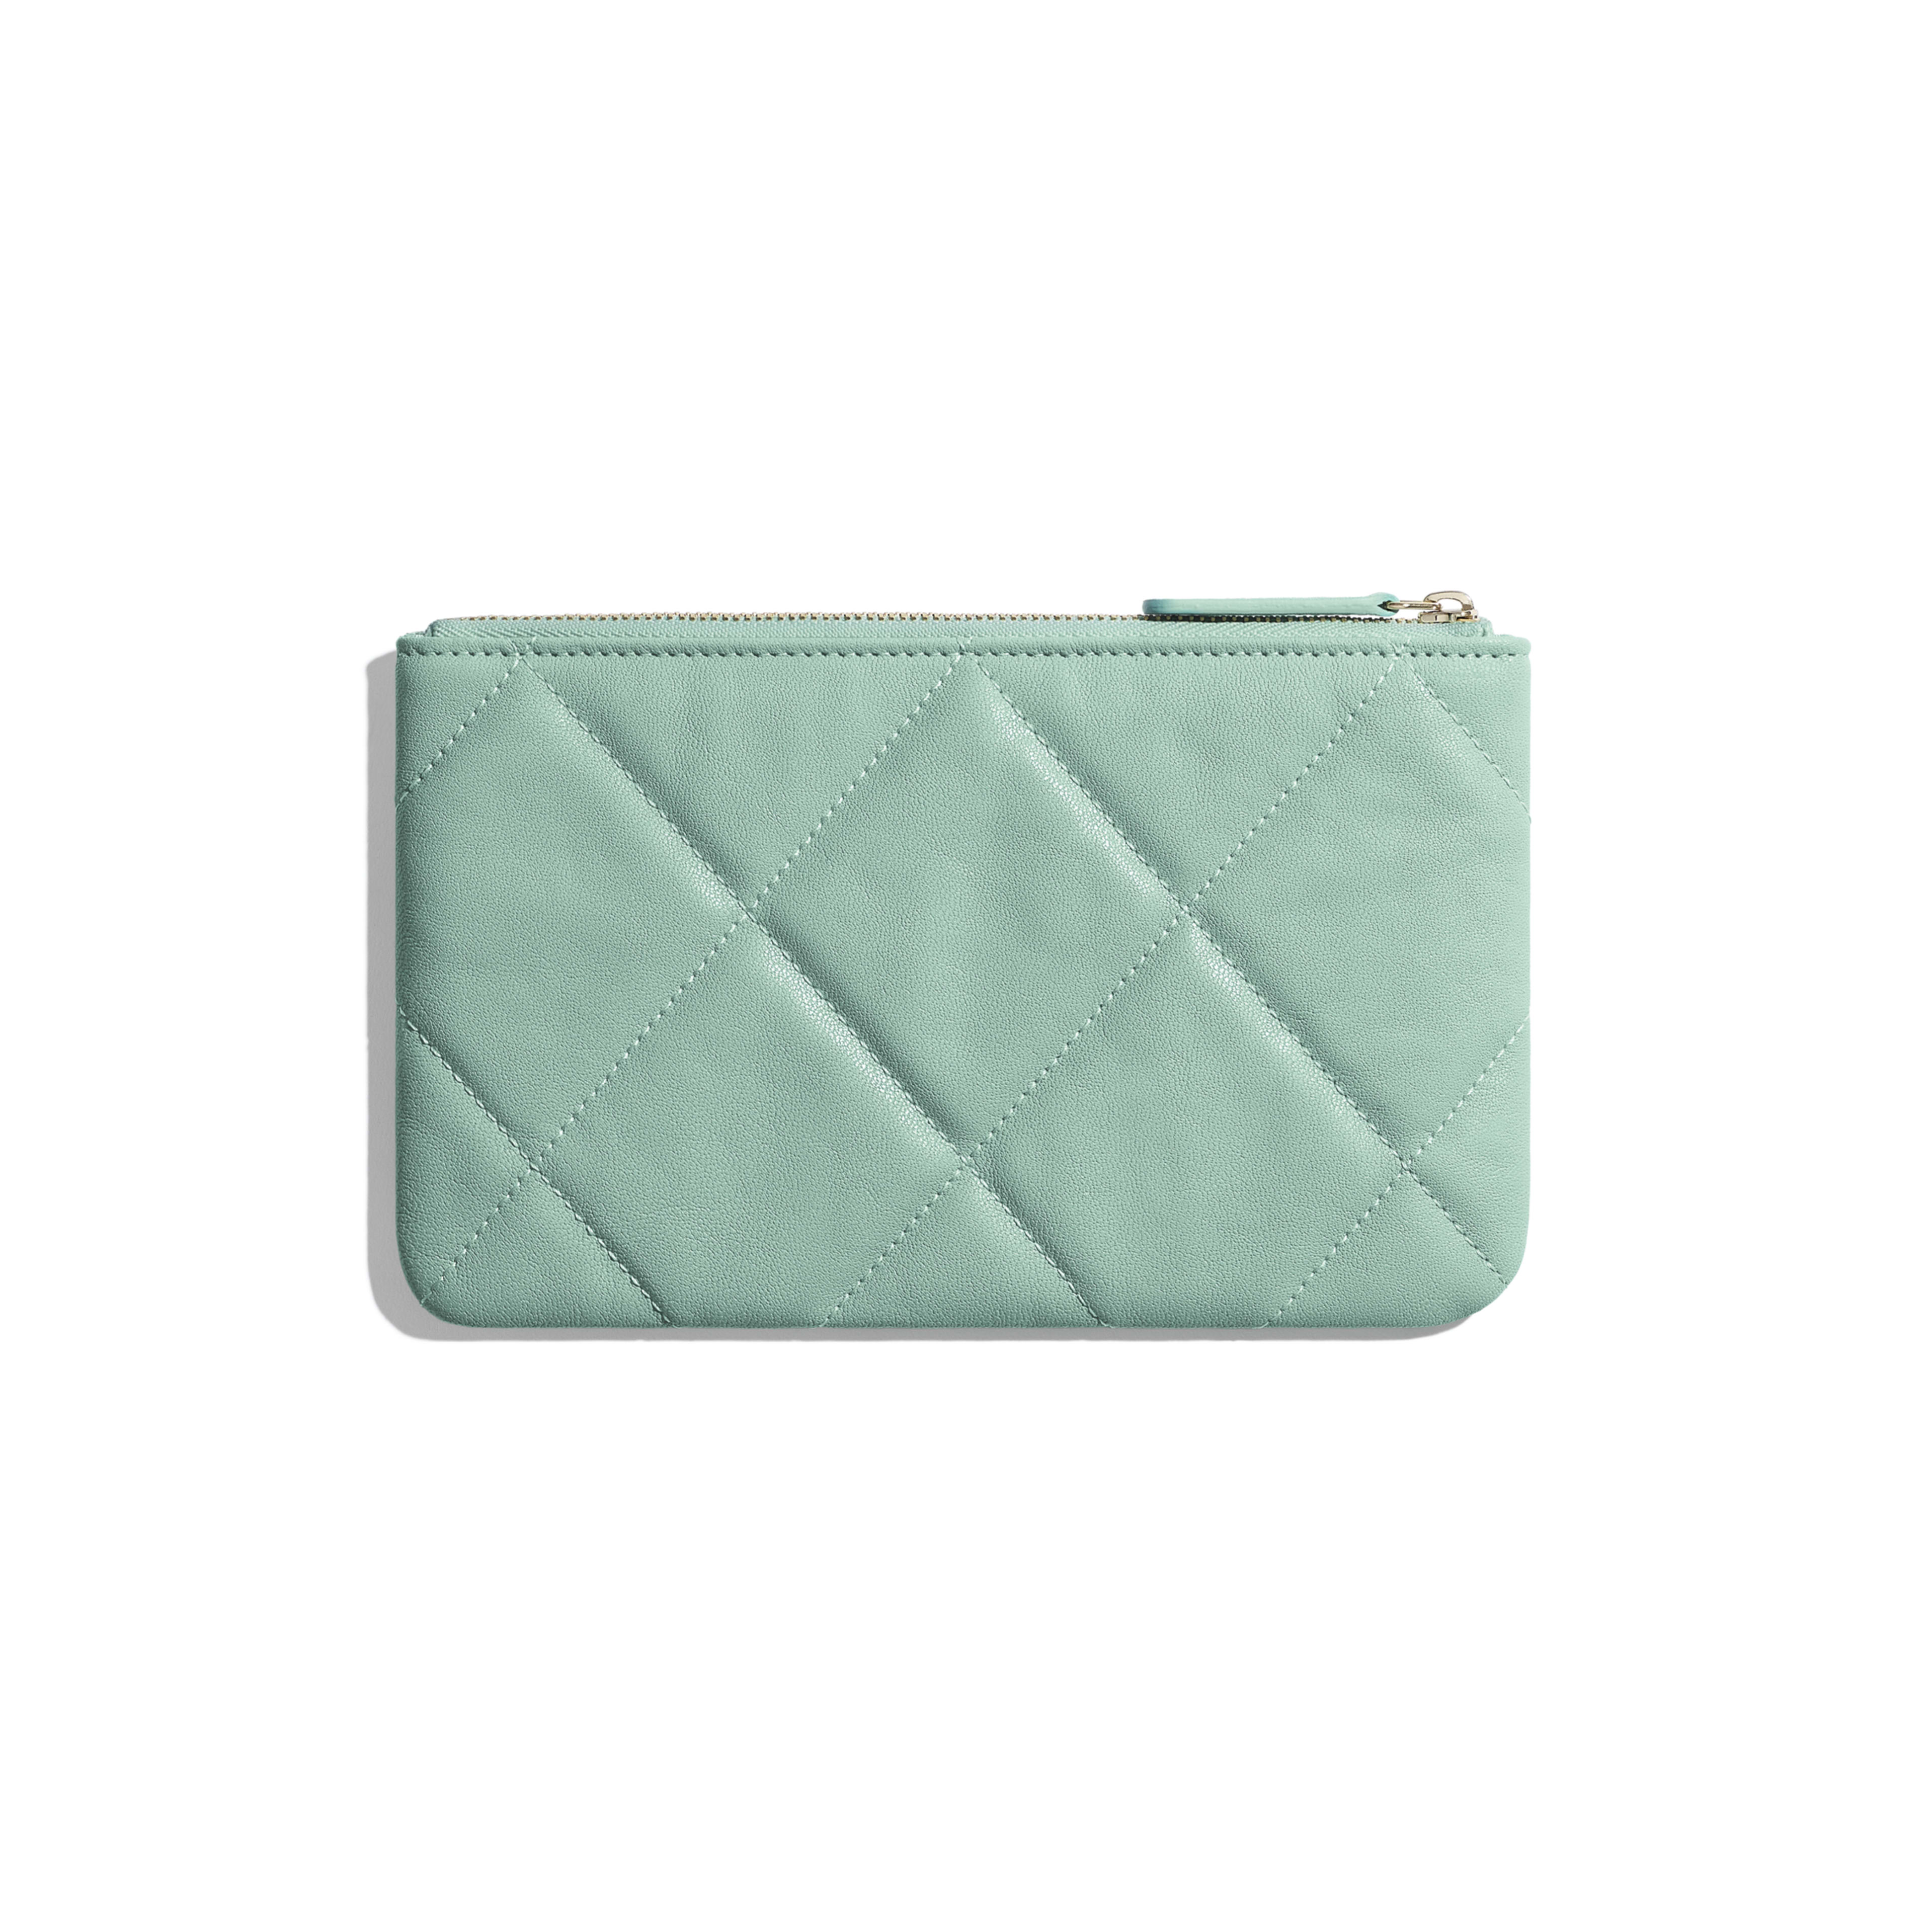 CHANEL 19 Small Pouch - Blue - Lambskin, Gold-Tone, Silver-Tone & Ruthenium-Finish Metal - Alternative view - see full sized version